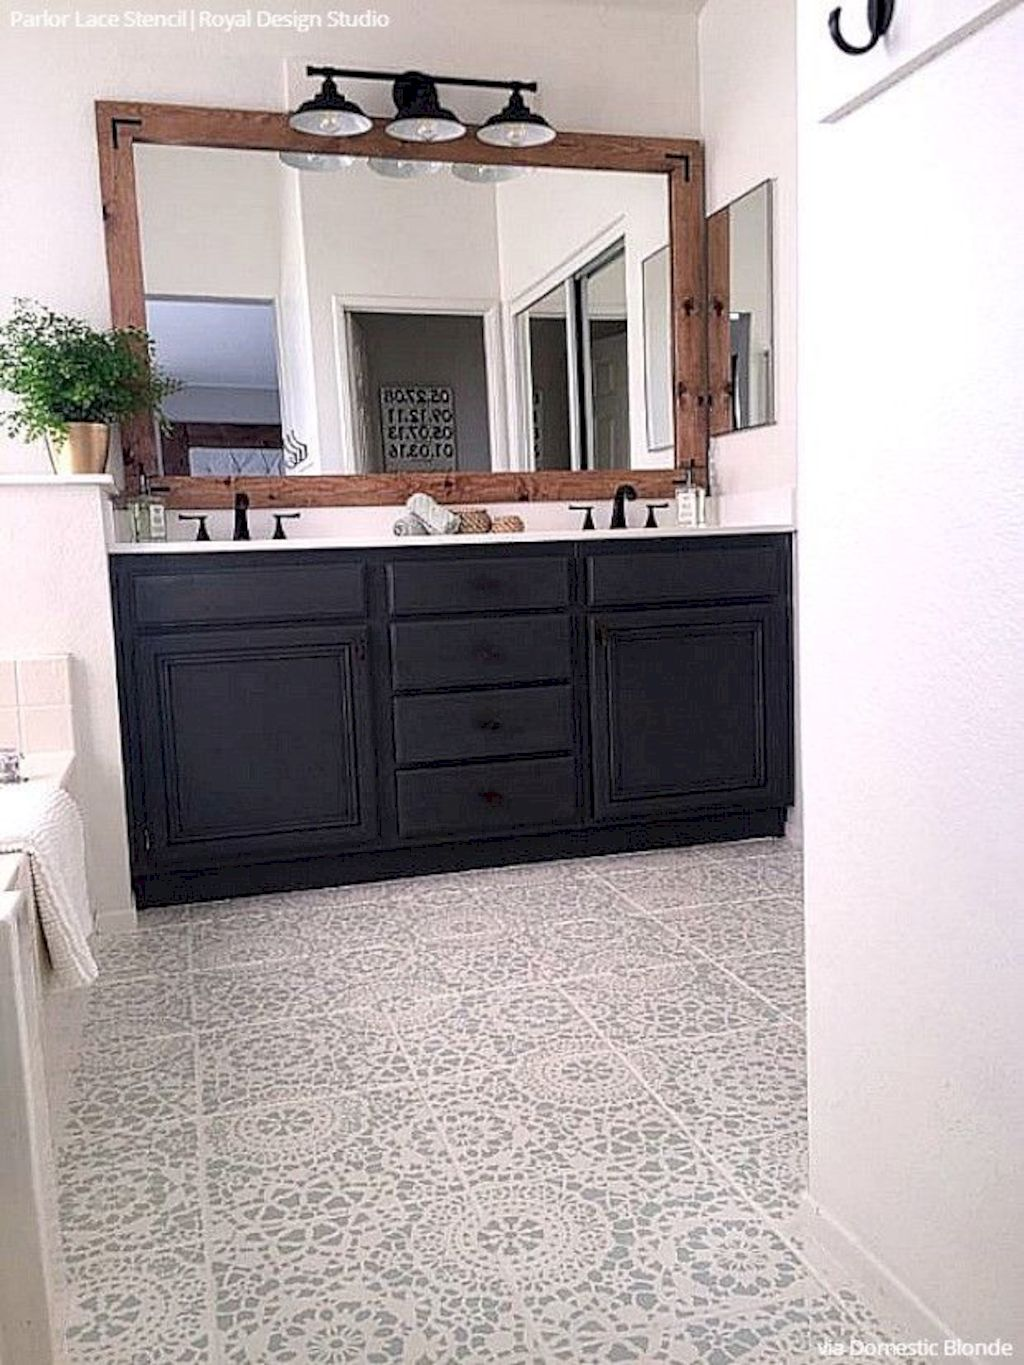 Beautiful bathroom update with eclectic patterned tiles and ethnic rugs very efficient to improve bathroom floor design Image 24